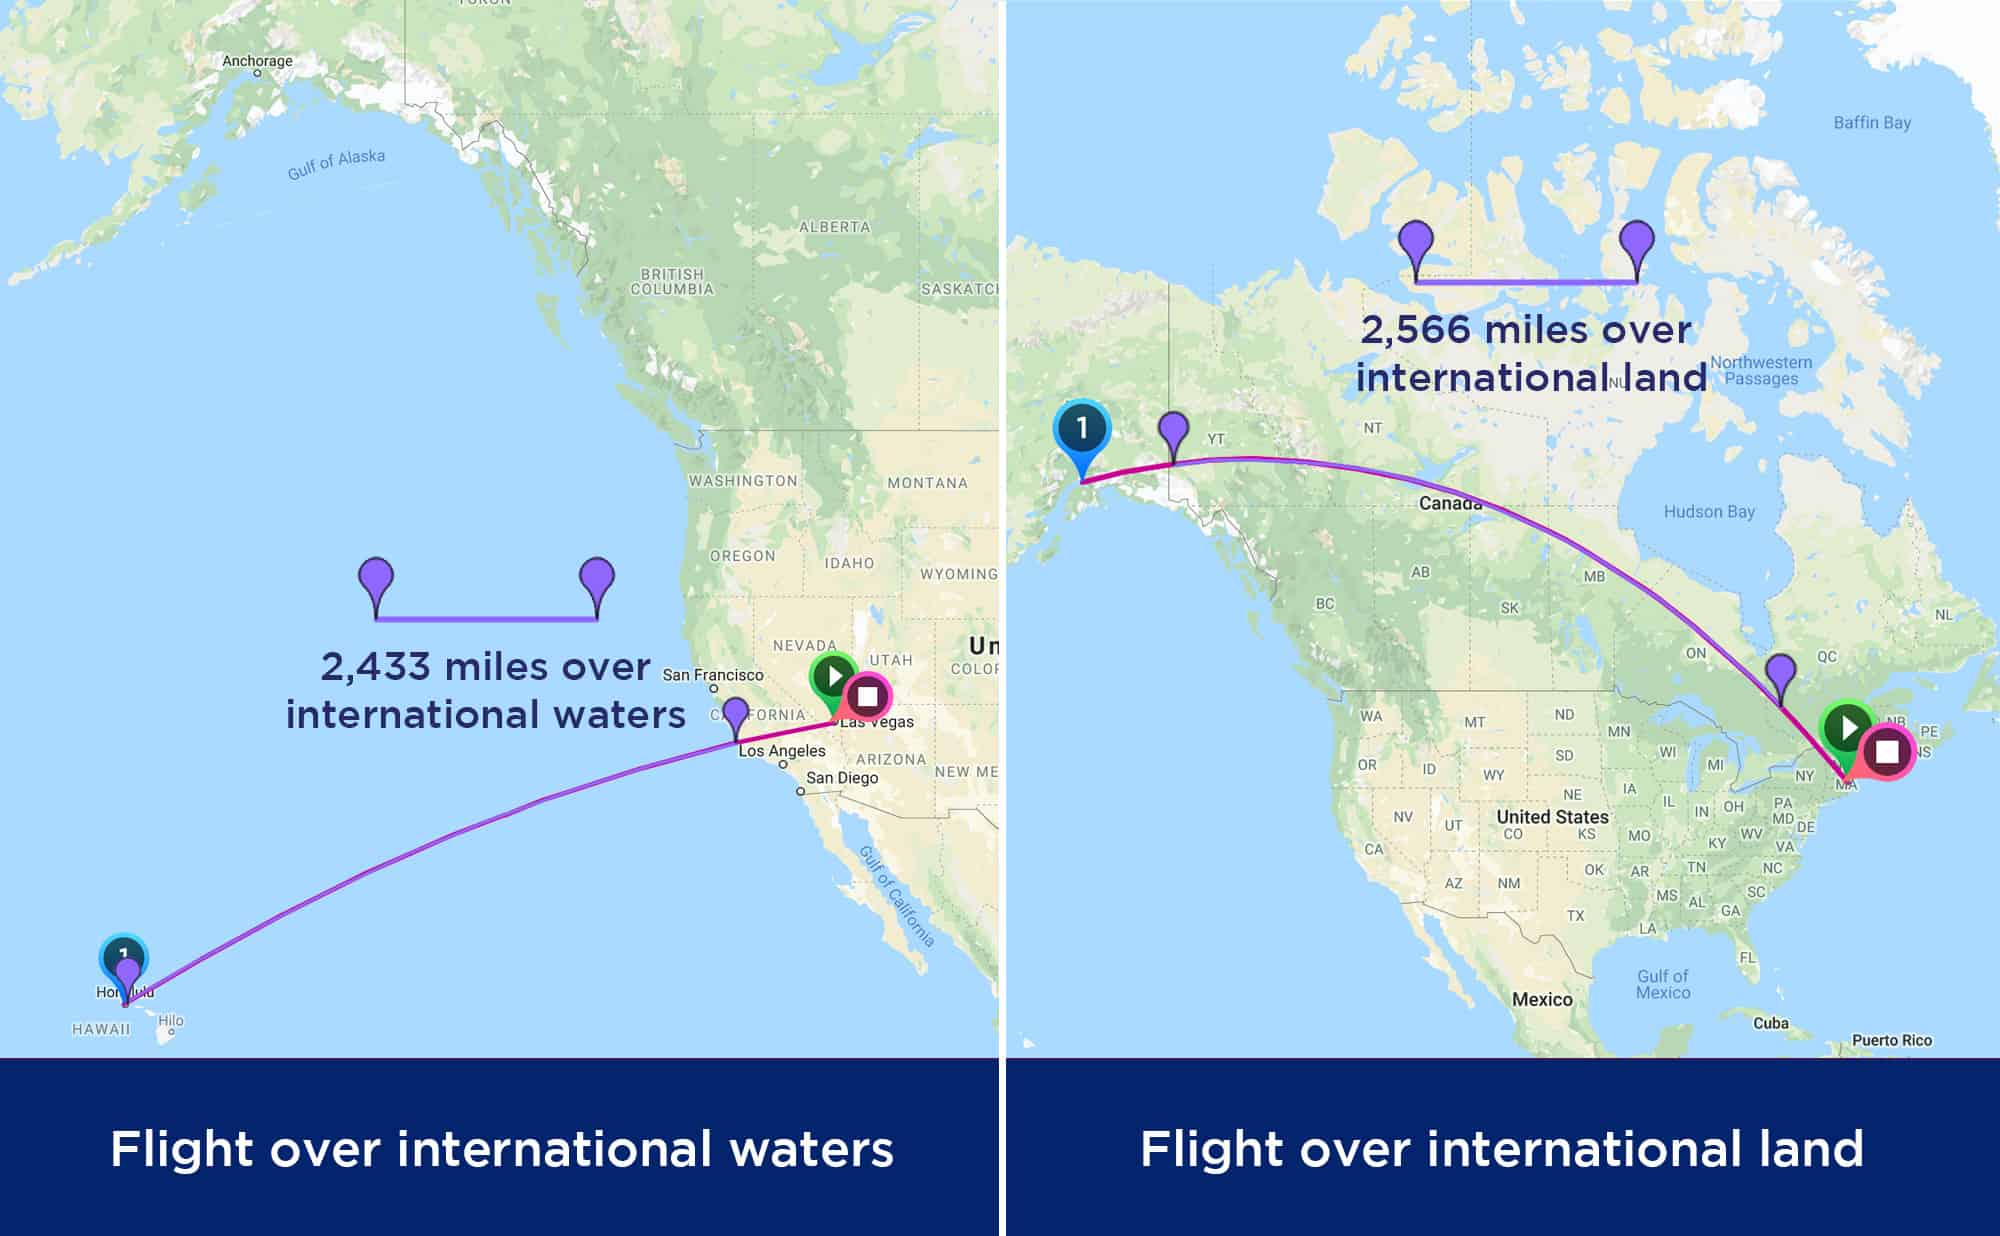 Map of flights over international water and international land